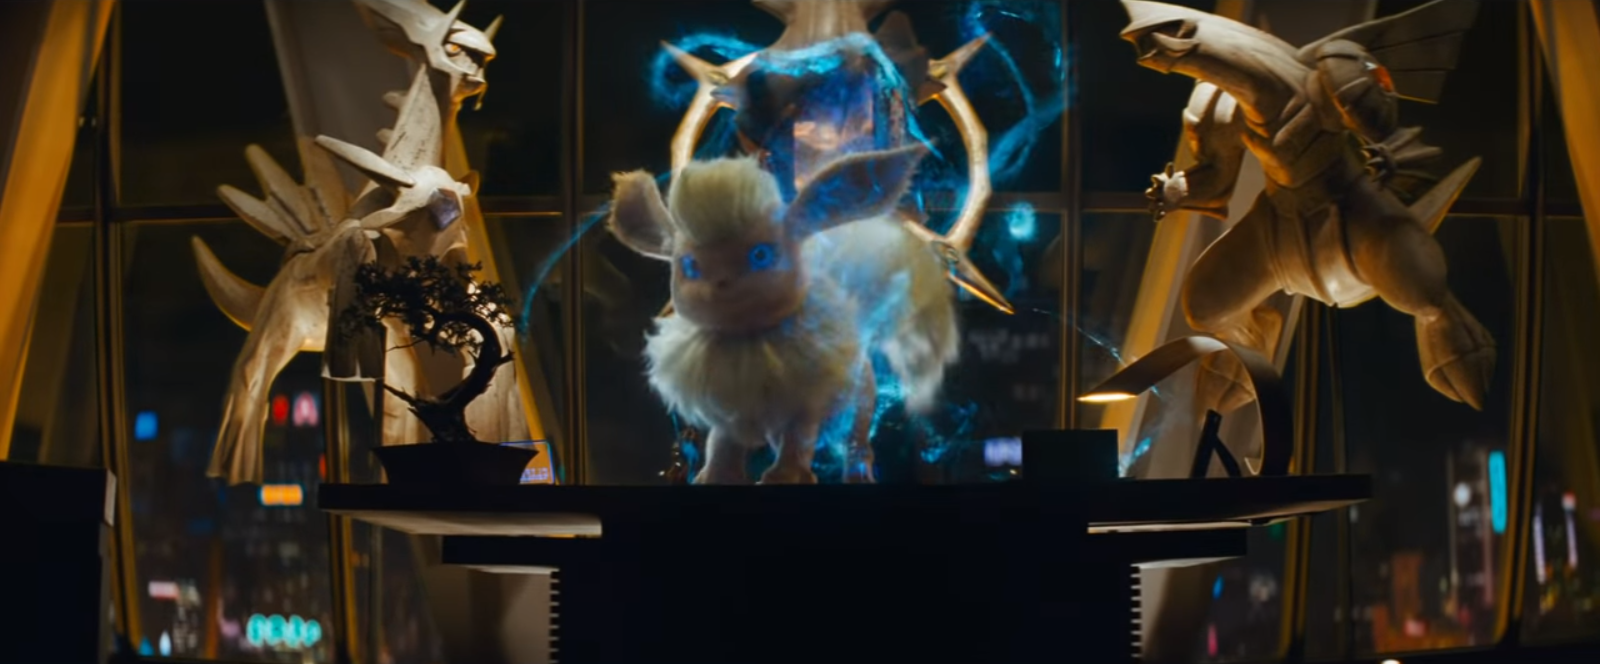 I Really Wanted To See An Eevee From This Movie But Instead I See